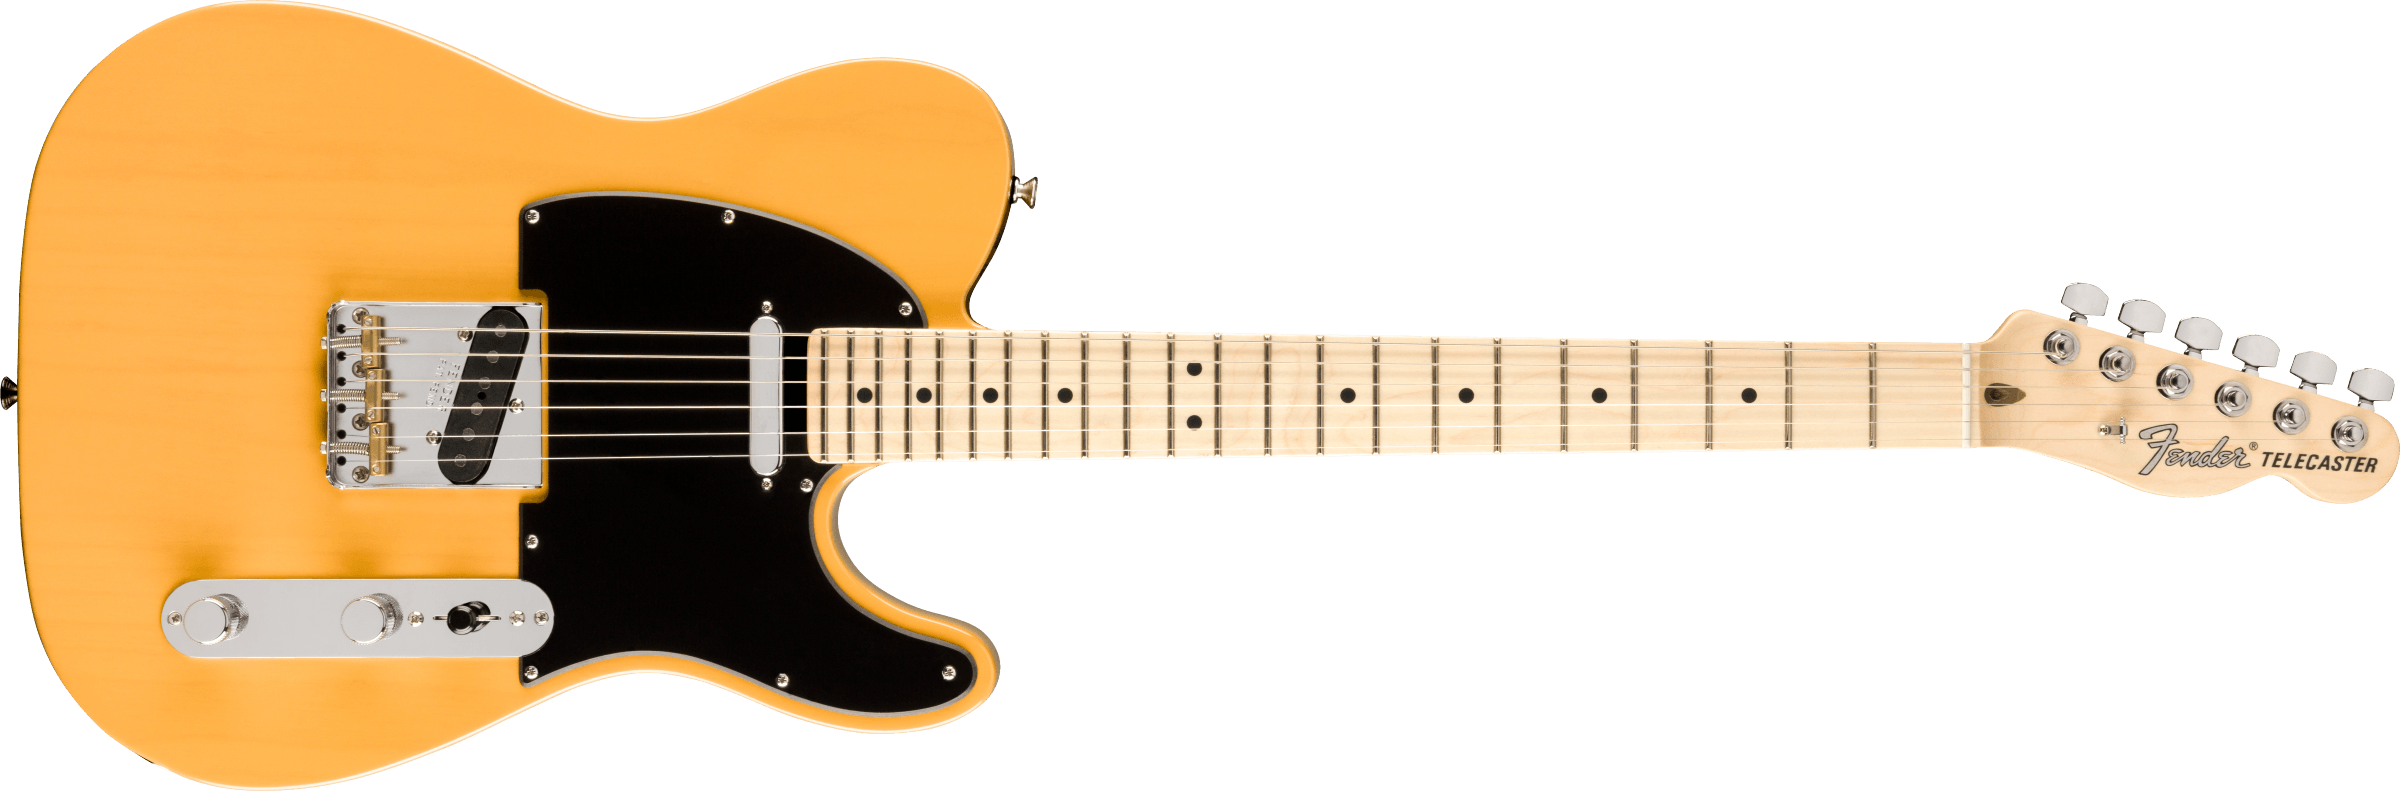 FENDER 2019 Limited Edition American Performer Telecaster, Maple Fingerboard, Butterscotch Blonde